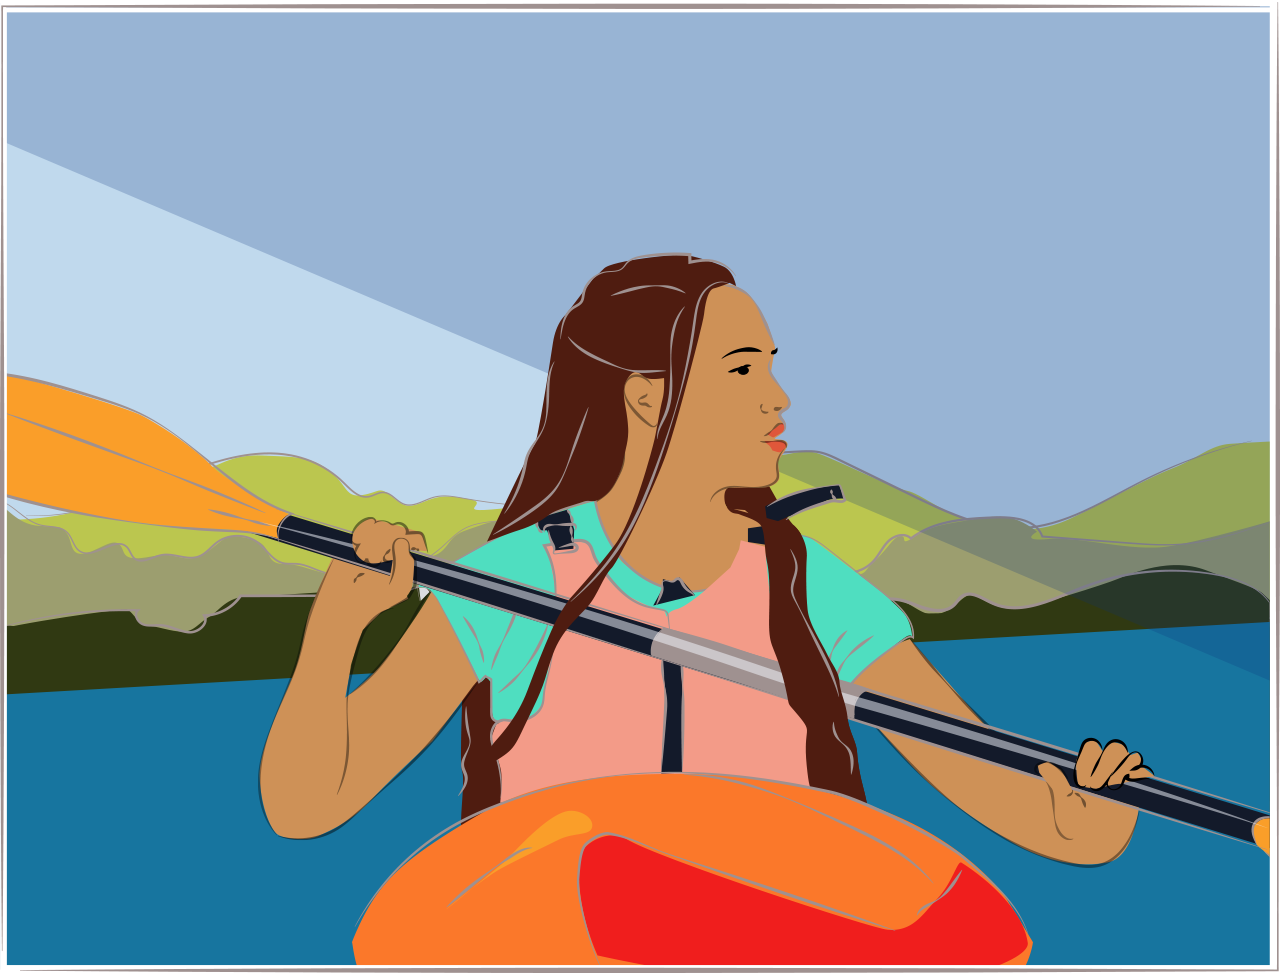 Illustration of a woman in a kayak